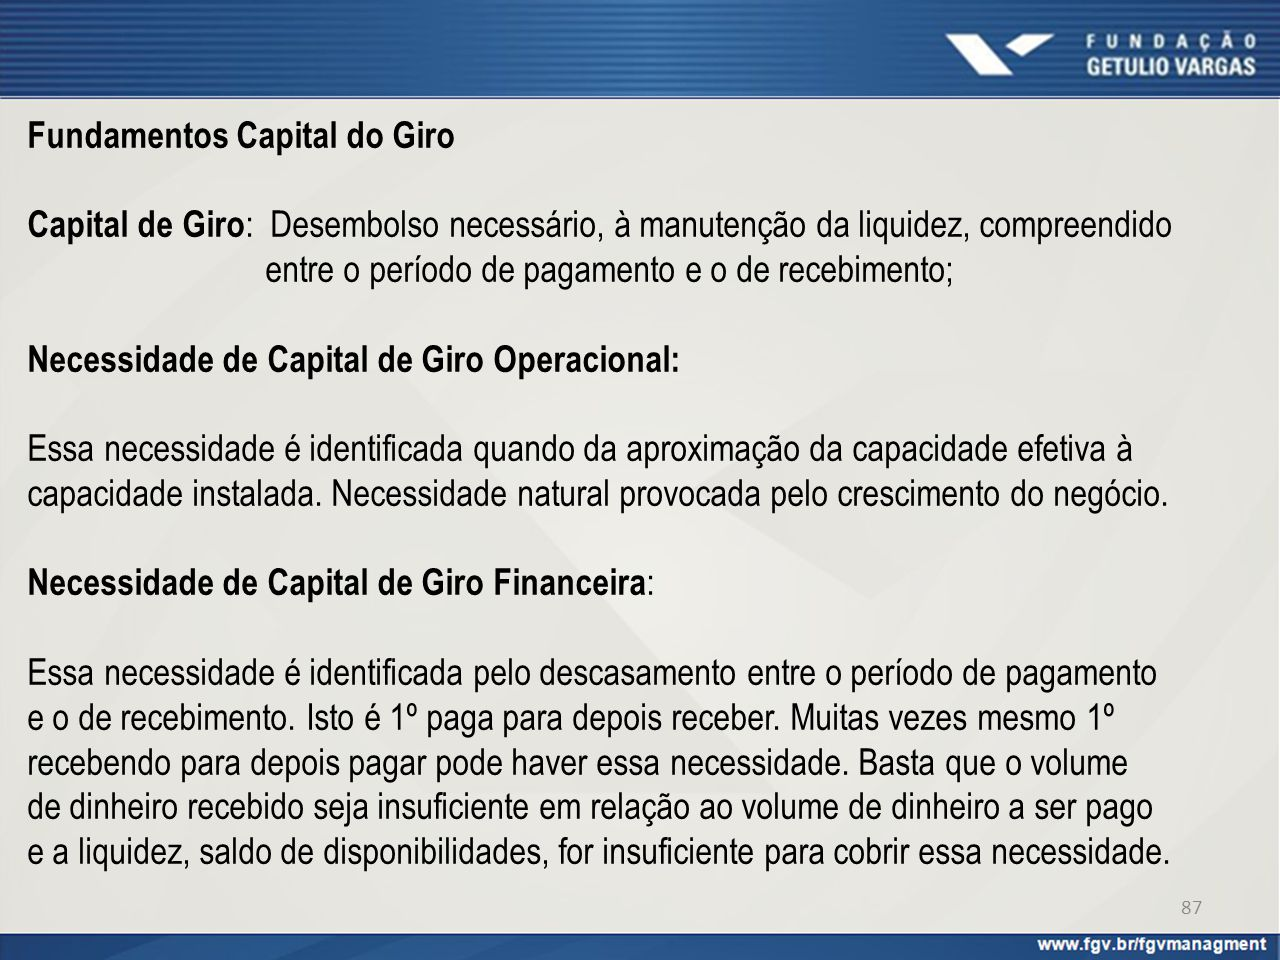 Fundamentos Capital do Giro